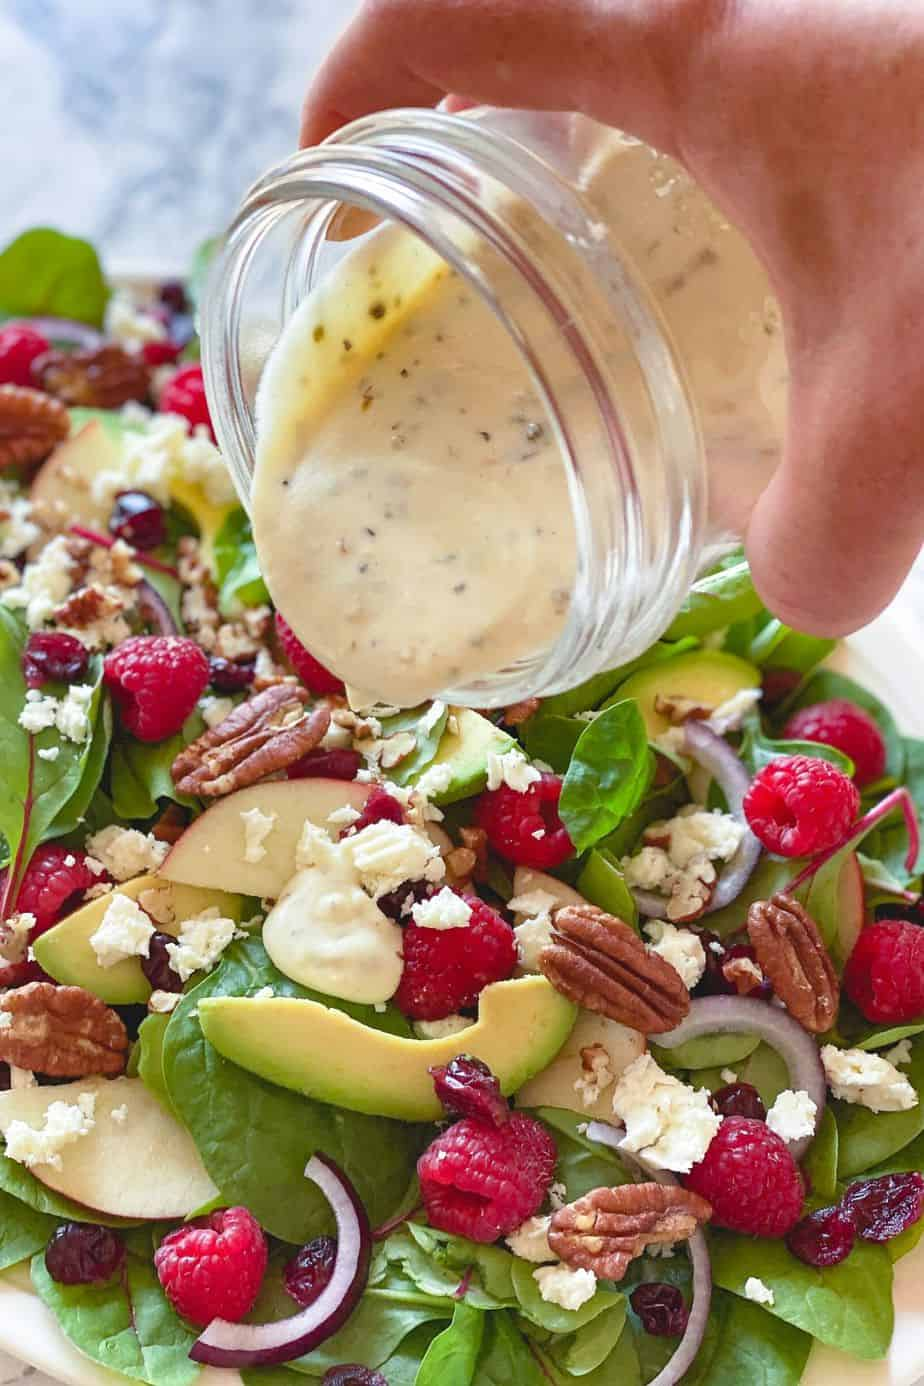 The taste of this creamy Greek Yogurt Herb Dressing is so luxurious that you'll love adding it to many other recipes as it instantly brightens any dish.-The Yummy Bowl